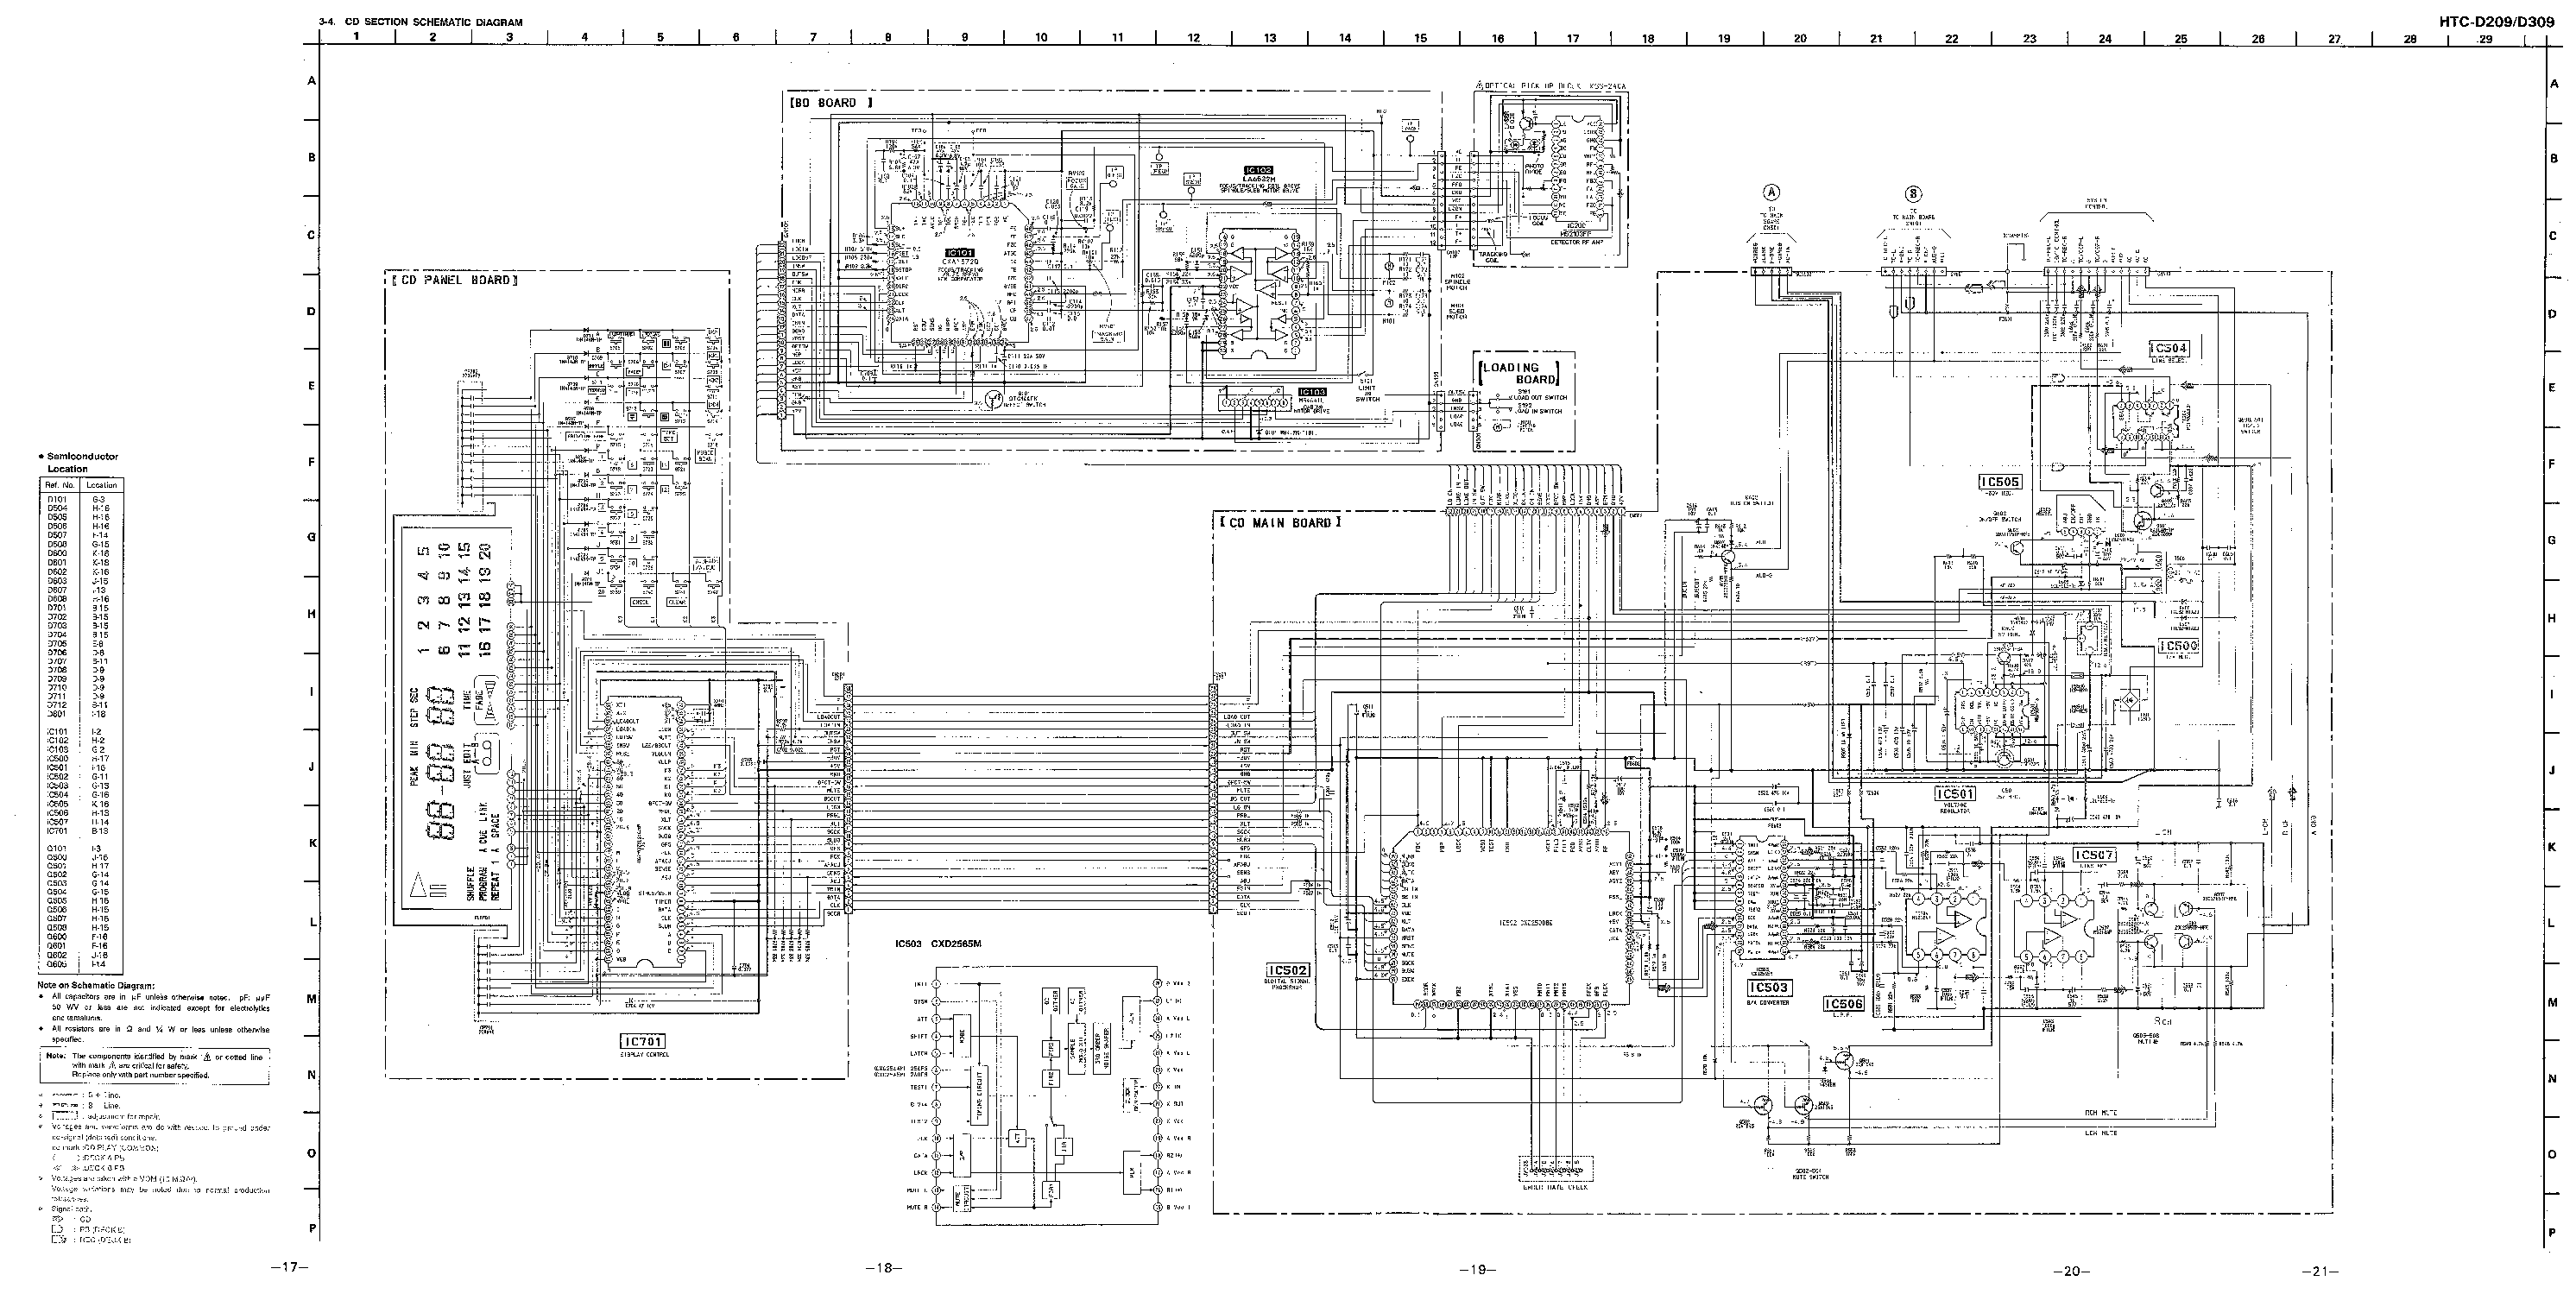 SONY HTC-D209 D309 SCH Service Manual download, schematics